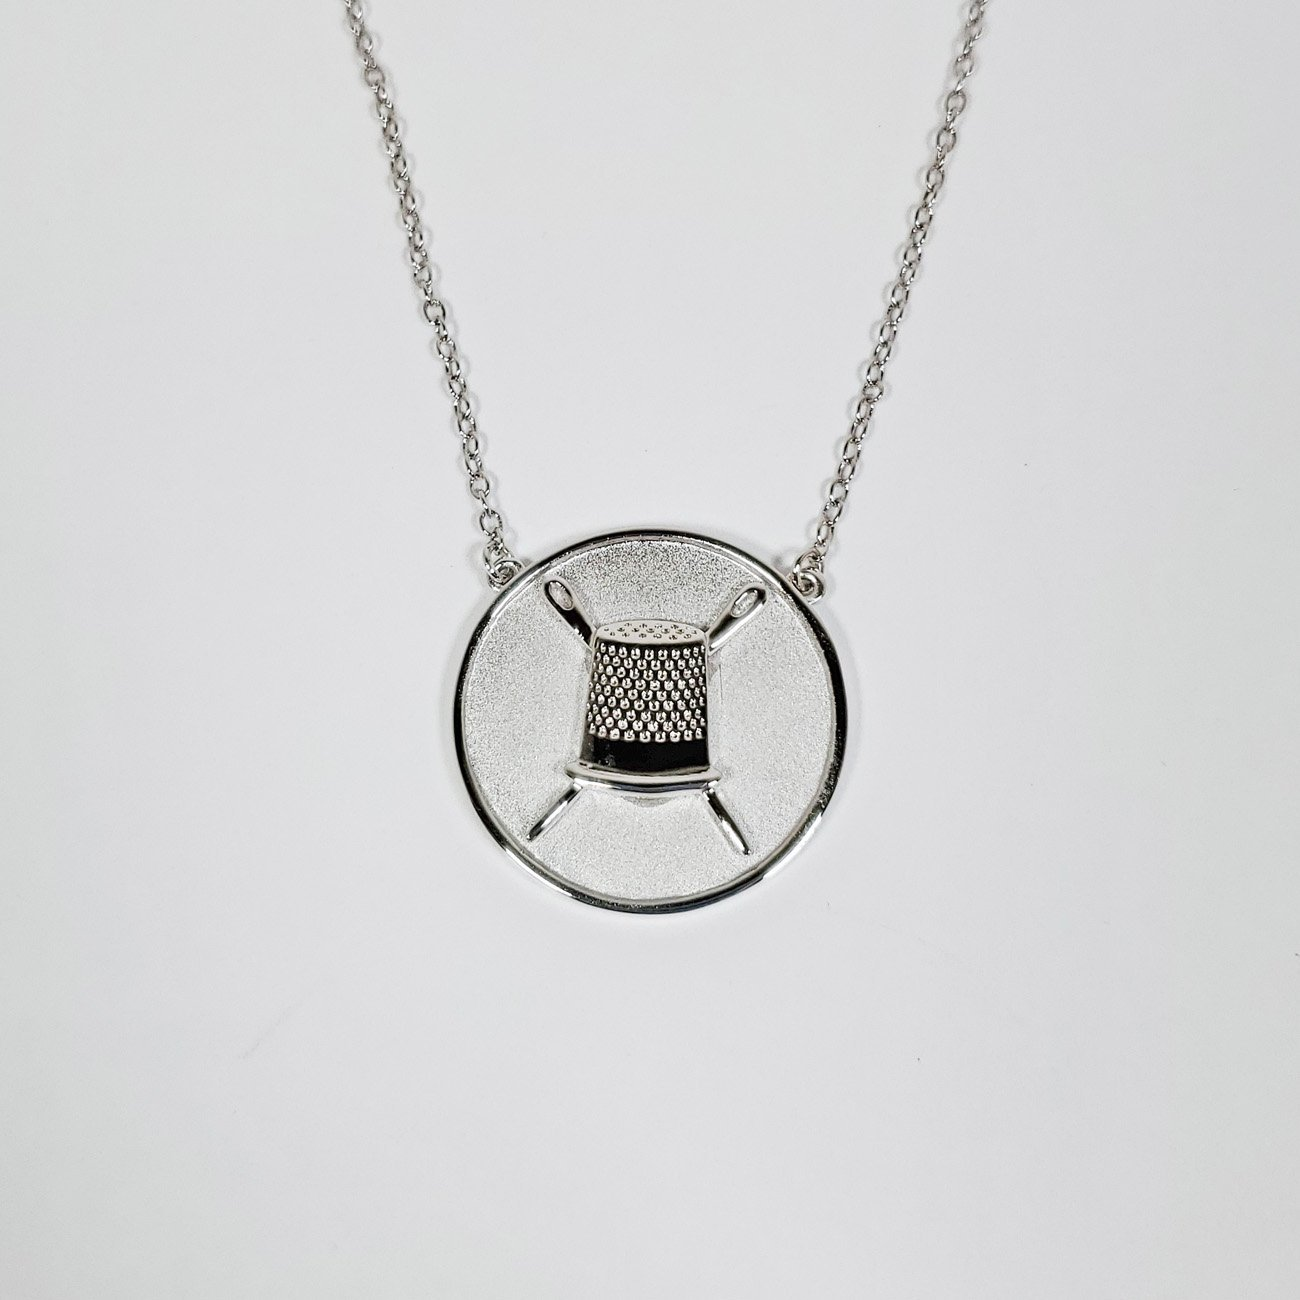 Thimble Coin Pendant Necklace Silver from the Quilt Spot